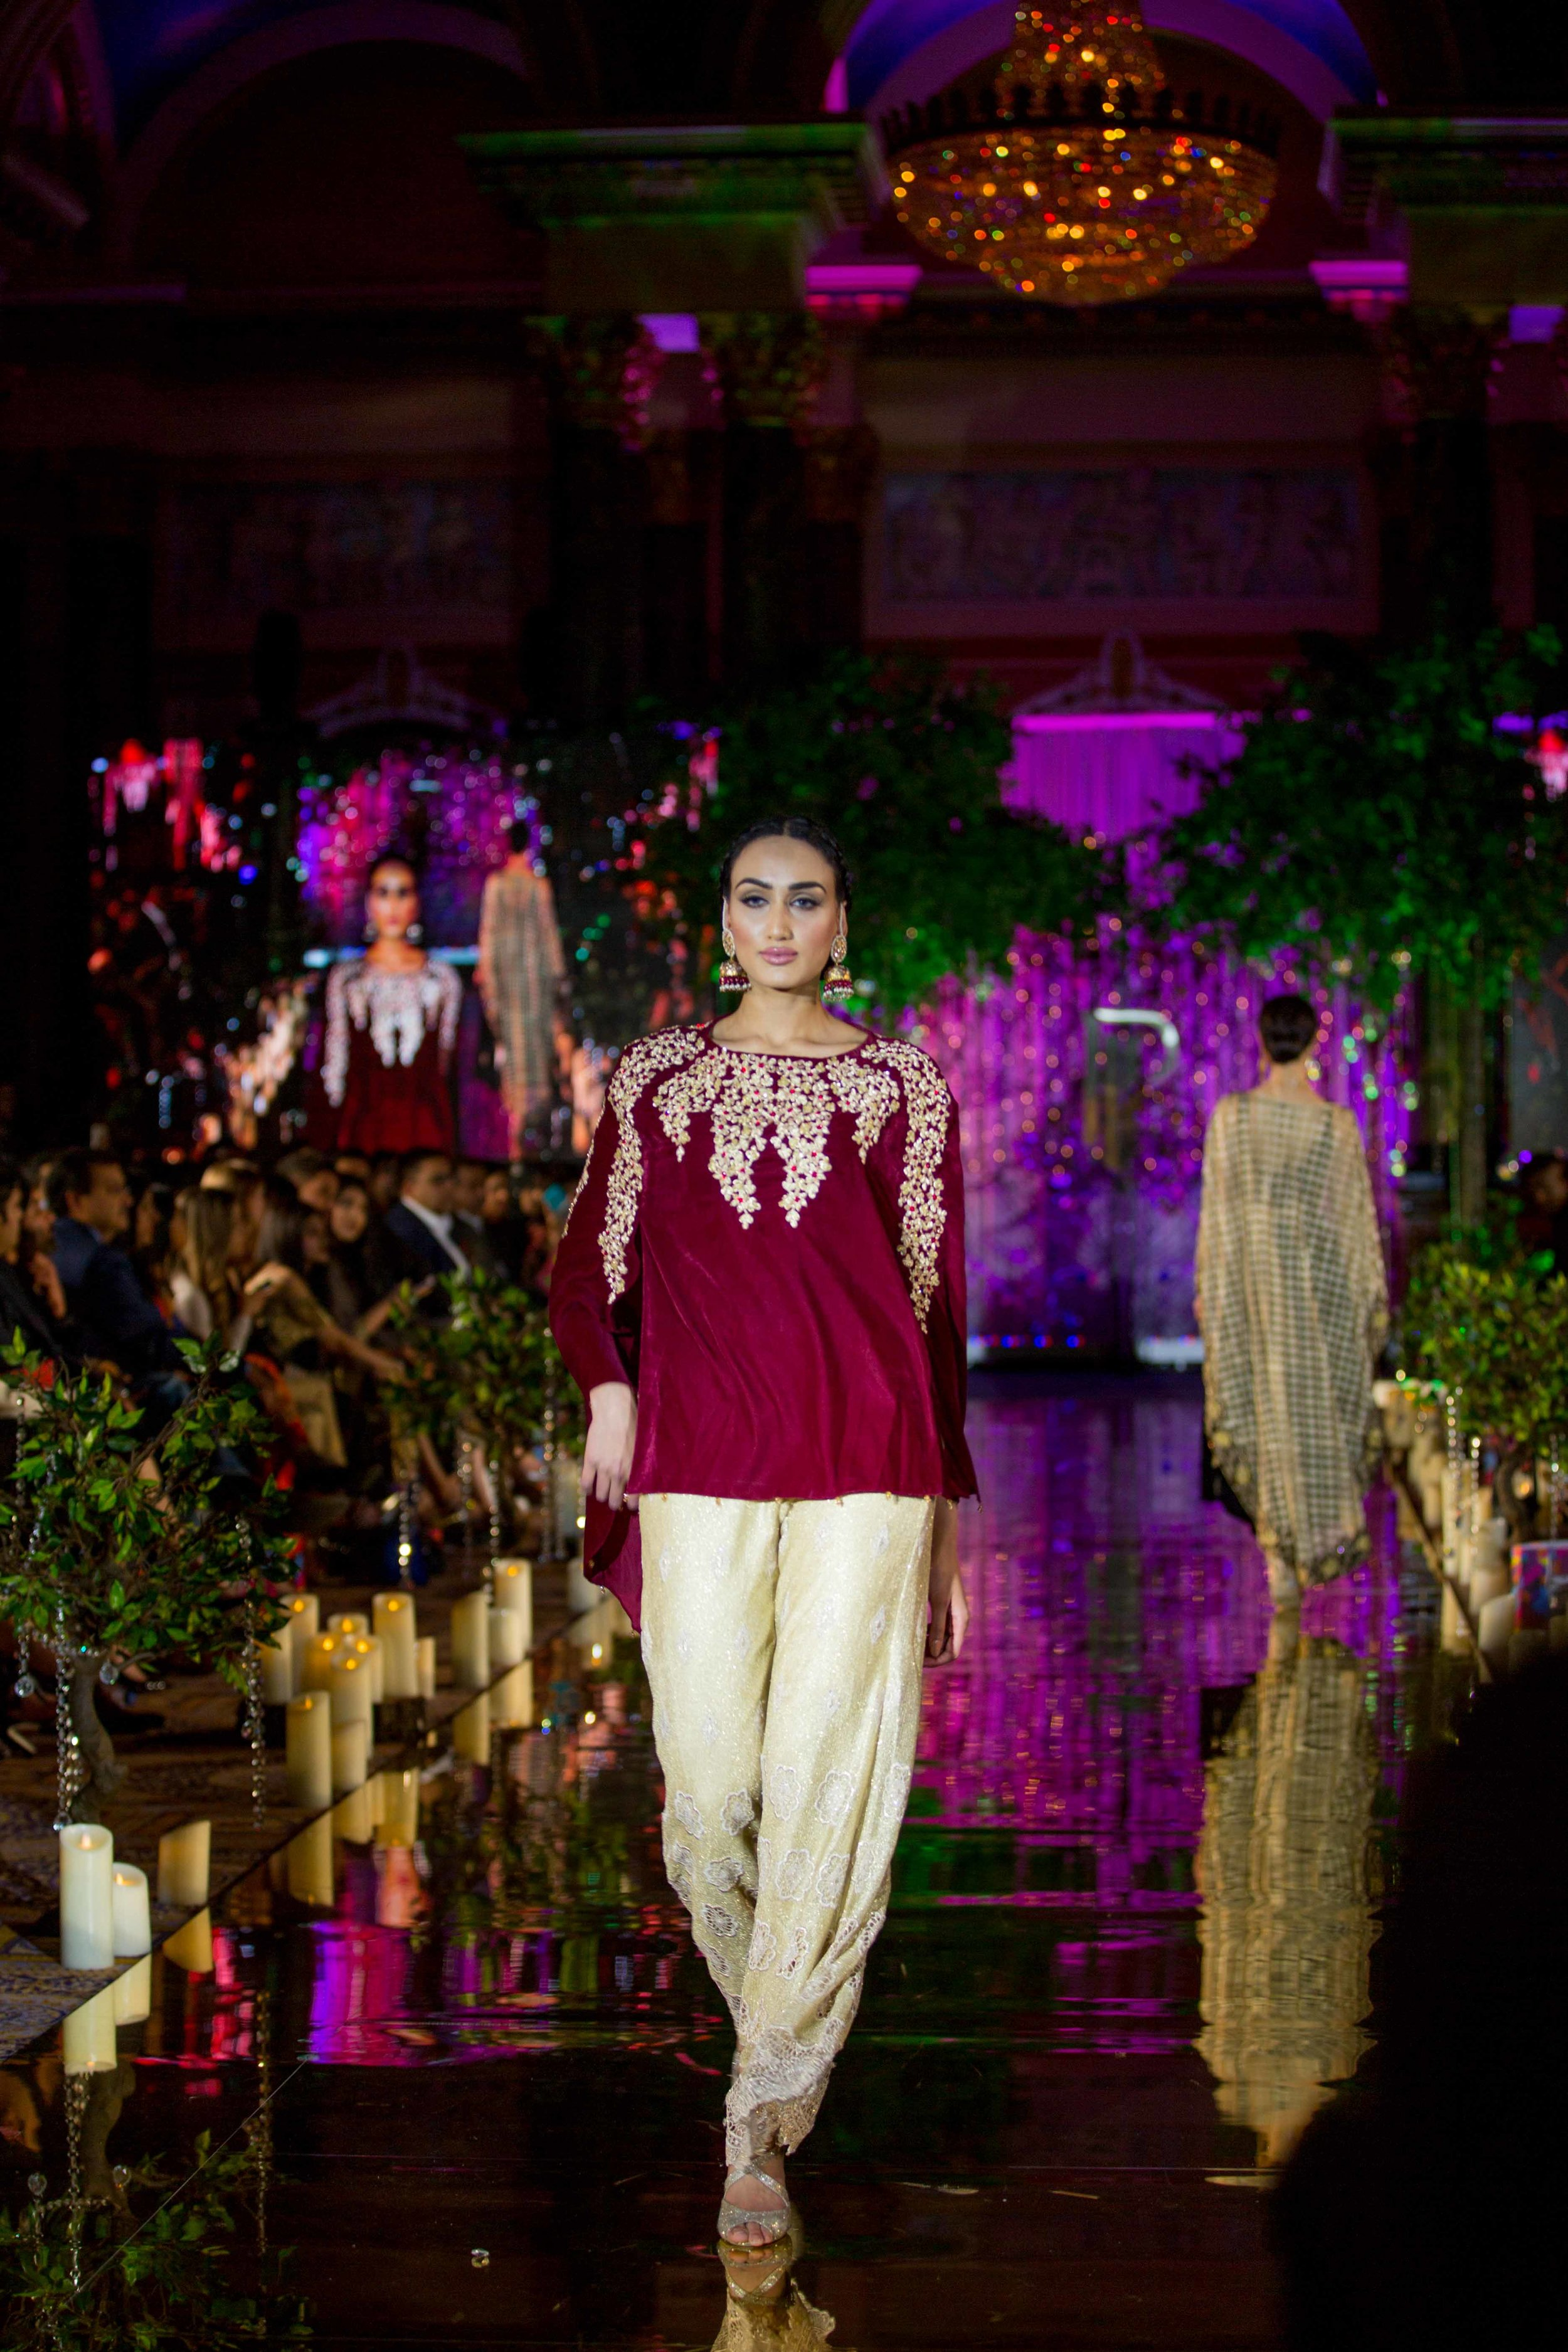 IPLF-IPL-Indian-Pakistani-London-Fashion-London-Week-catwalk-photographer-natalia-smith-photography-komal-nasir-23.jpg